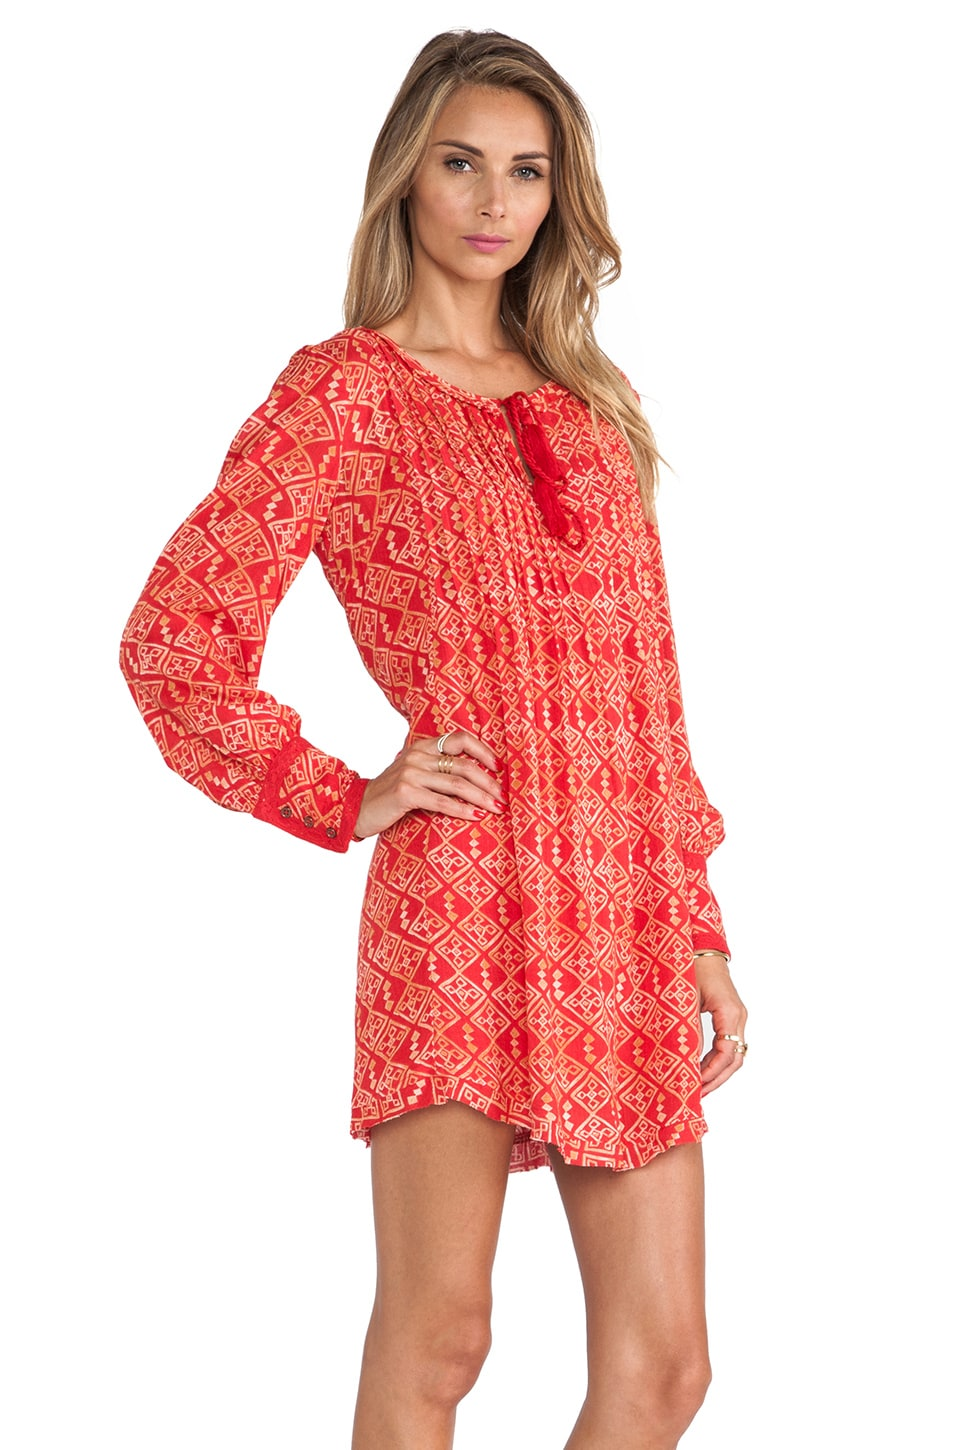 Free People Marlow Dress in Red Combo - REVOLVE